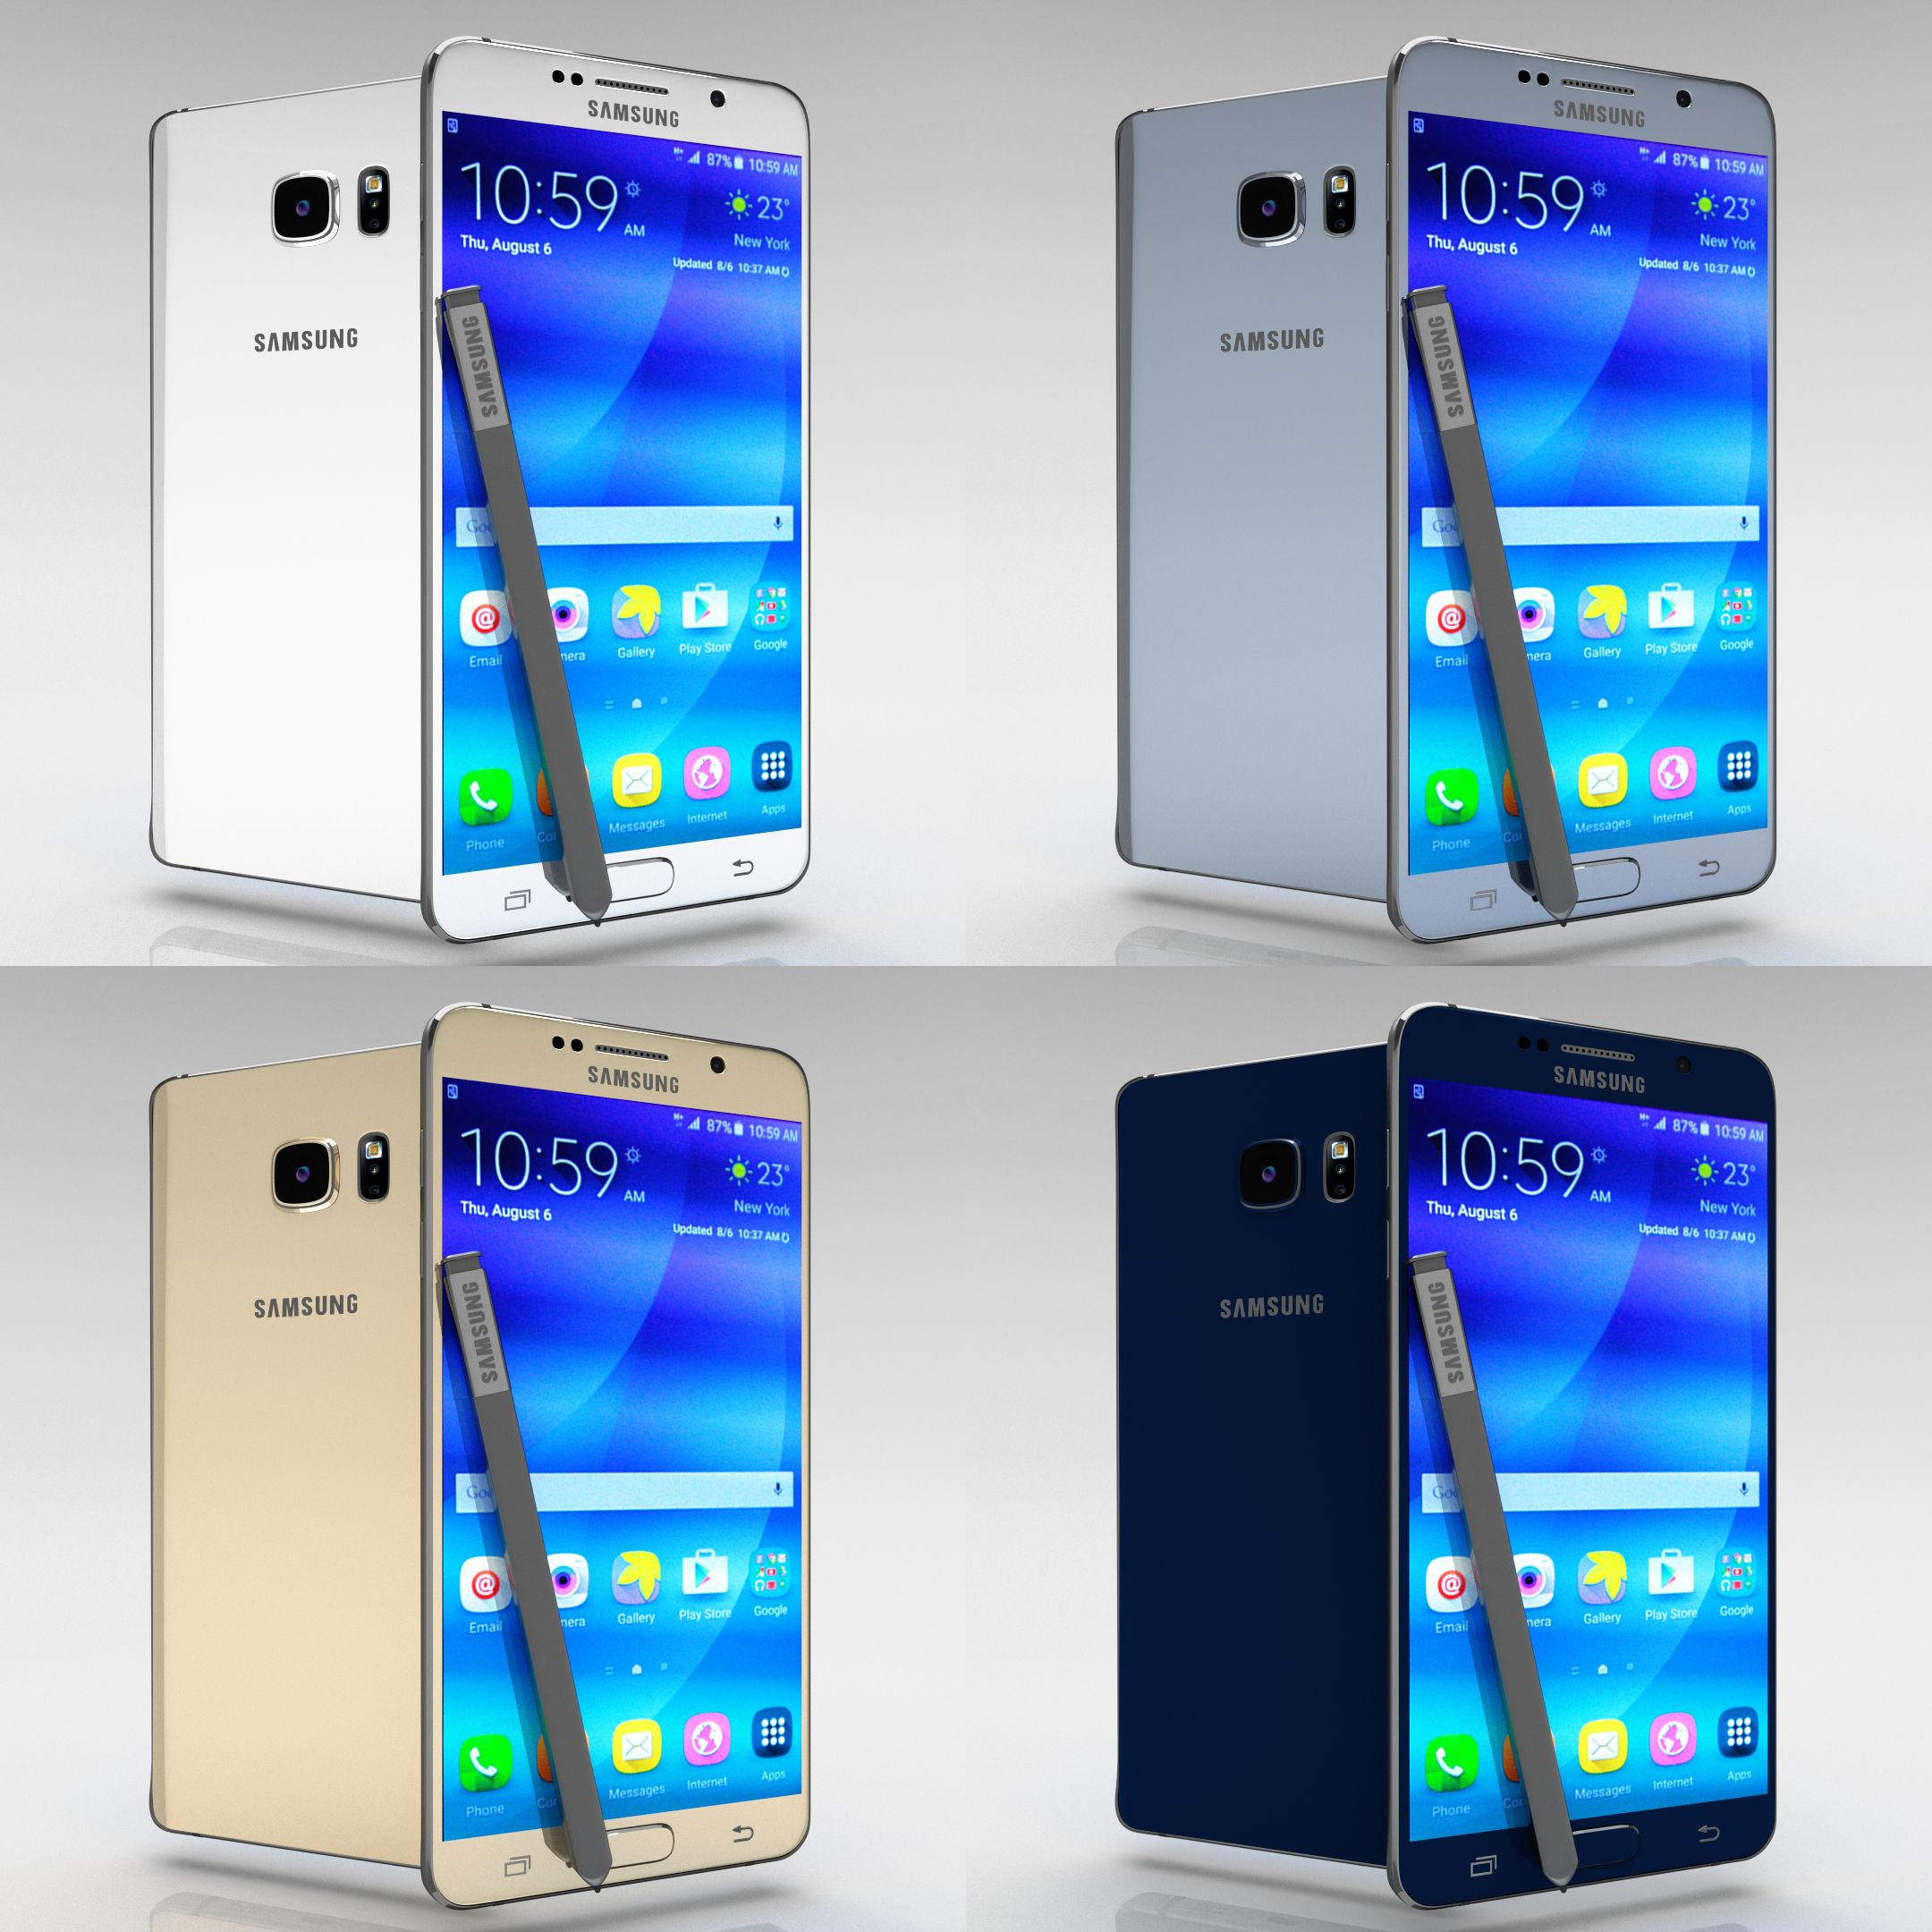 Samsung Galaxy Note 5 All Color Pack Samsung Galaxy Galaxy Note 5 Samsung Galaxy Note